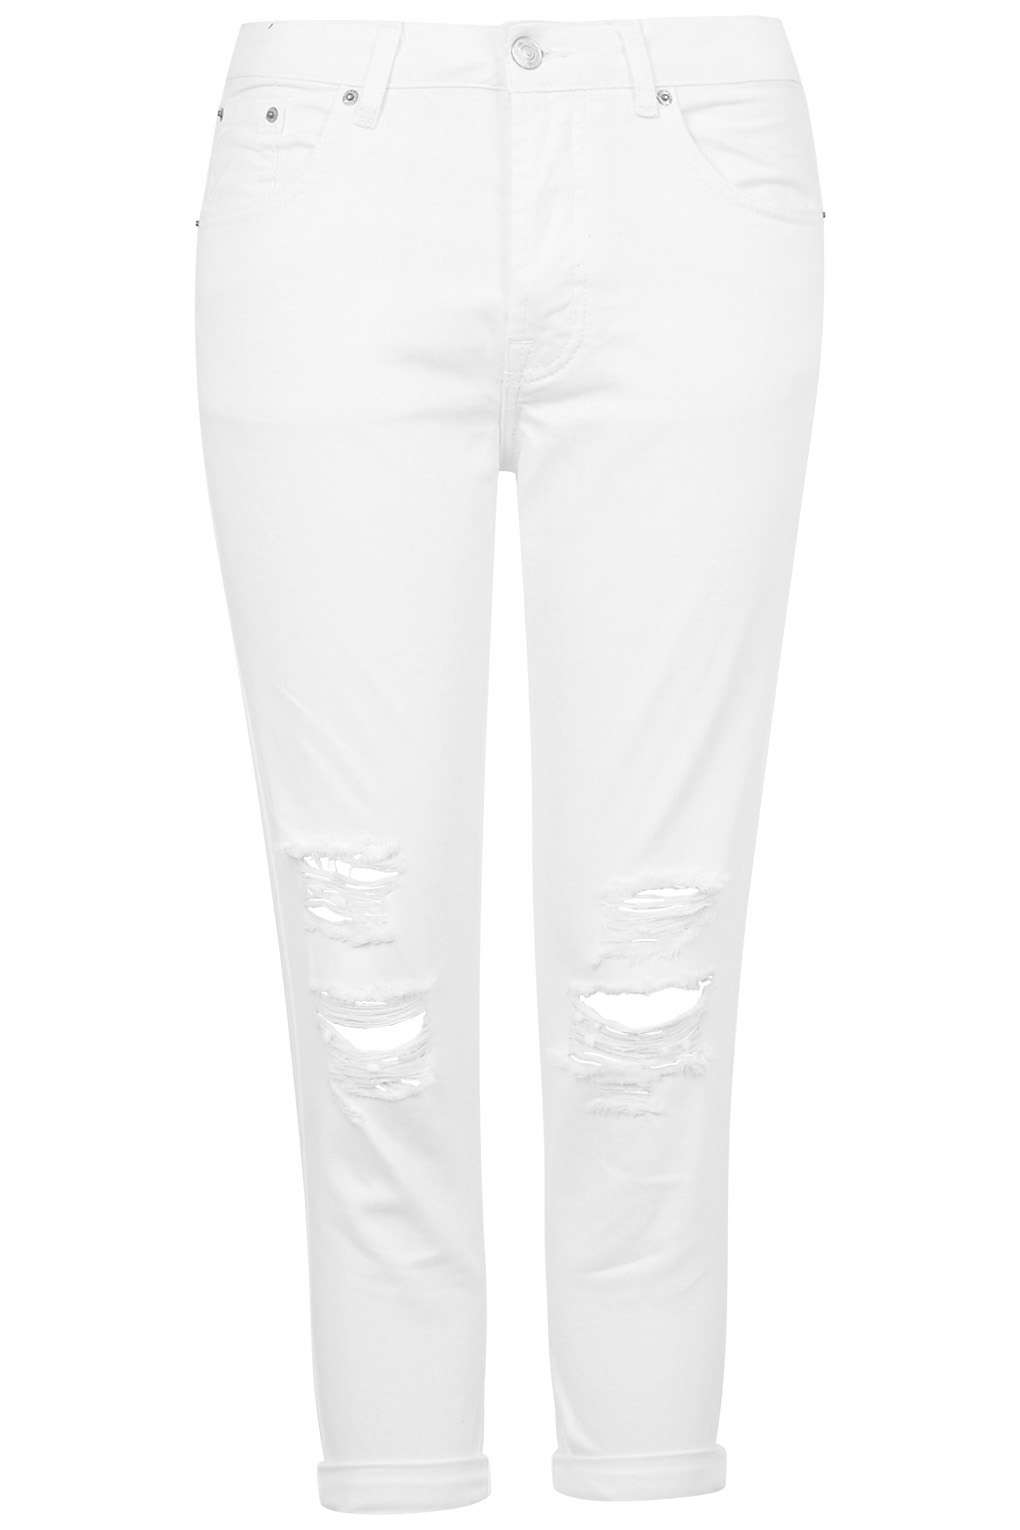 White Jeans For Sale